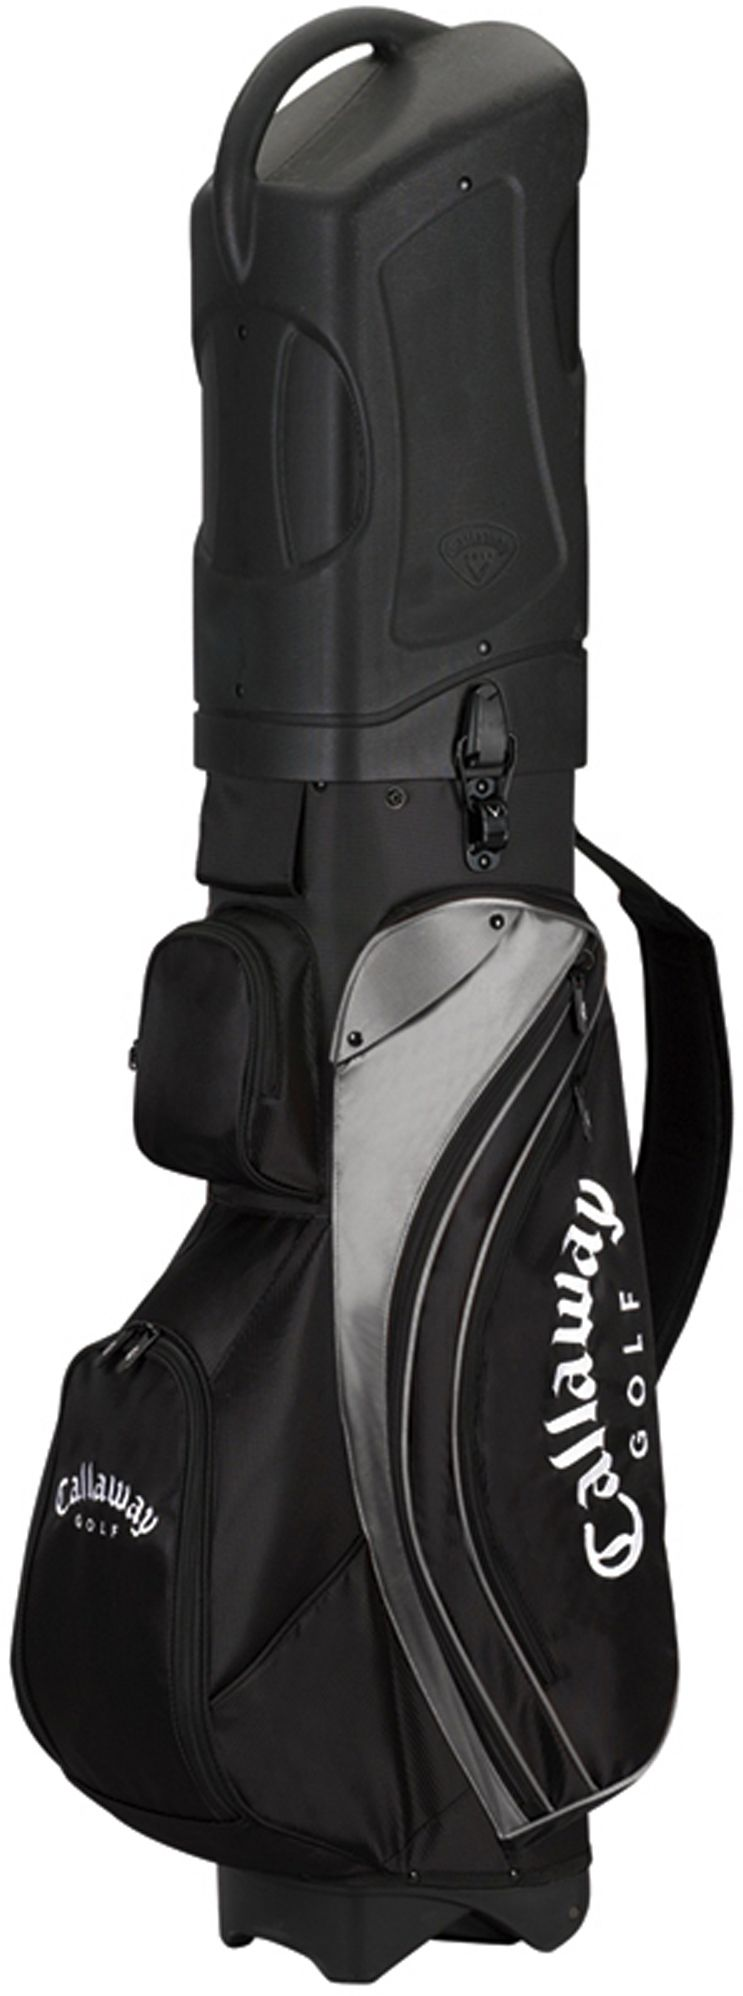 Callaway Golf Hybrid Travel Golf Bag